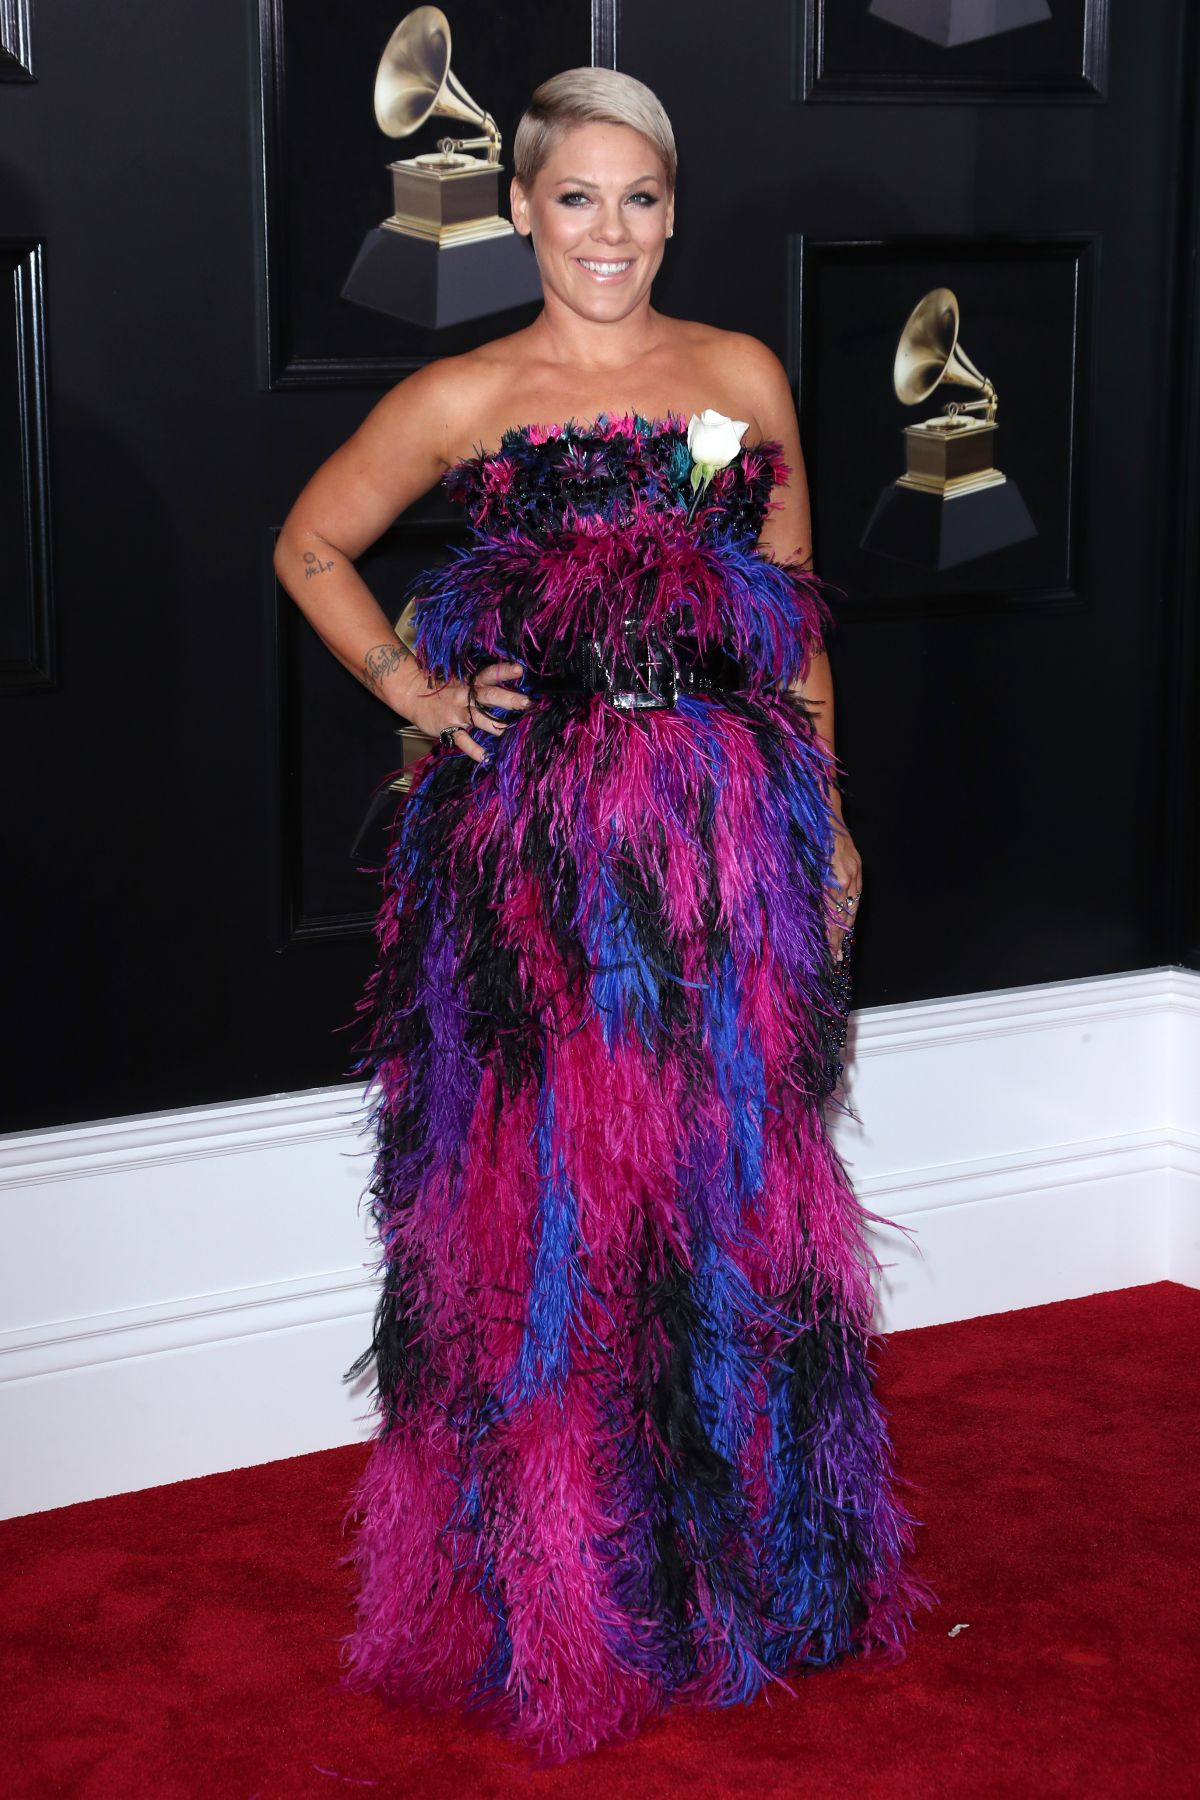 Pink At Grammy 2018 Awards In New York 01 28 2018 Hawtcelebs